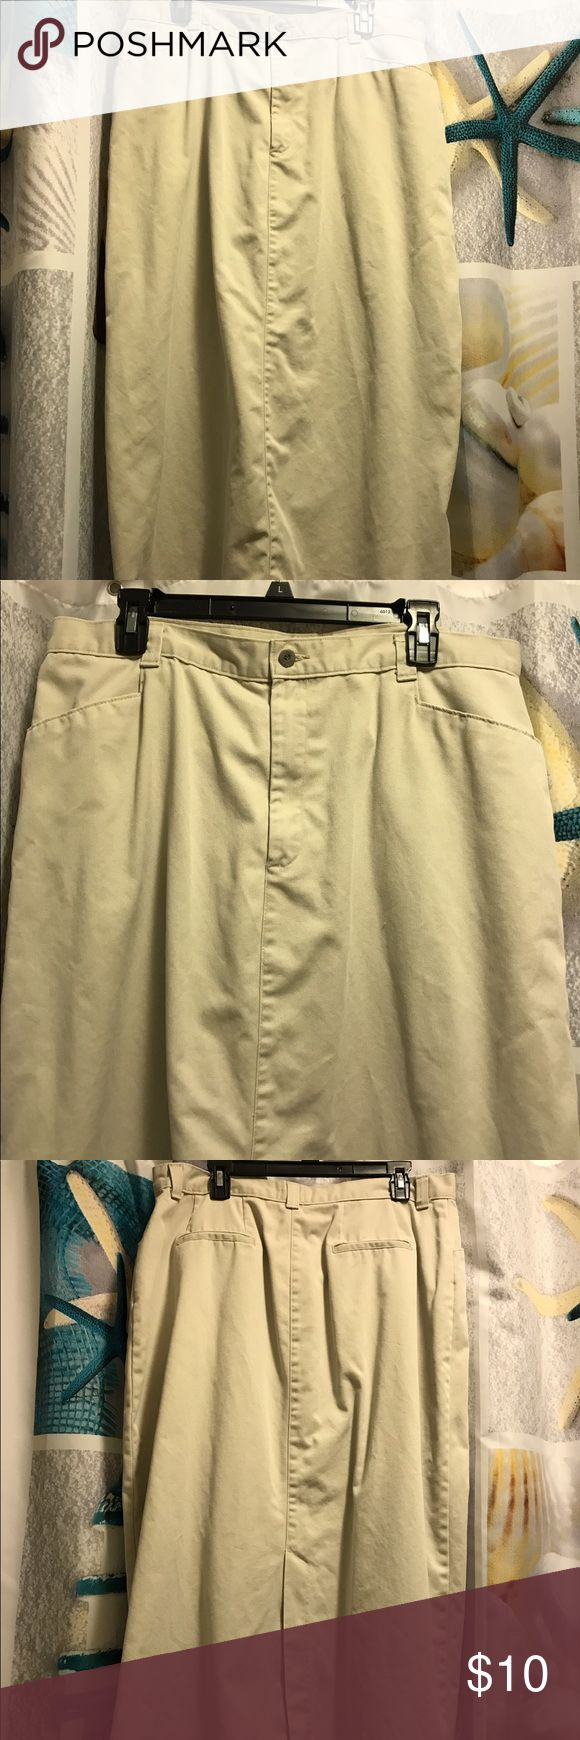 Lee Casuals Tan Khaki Maxi Skirt size 20 Back Slit Lee Casuals women's light tan Khaki long maxi skirt is size 20 and has a back slit. Skirt has belt loops, 3 front pockets and closes with a button and zipper. Skirt appears to have back pockets but doesn't. Tag is hard to read because of washings. Lee Skirts Maxi